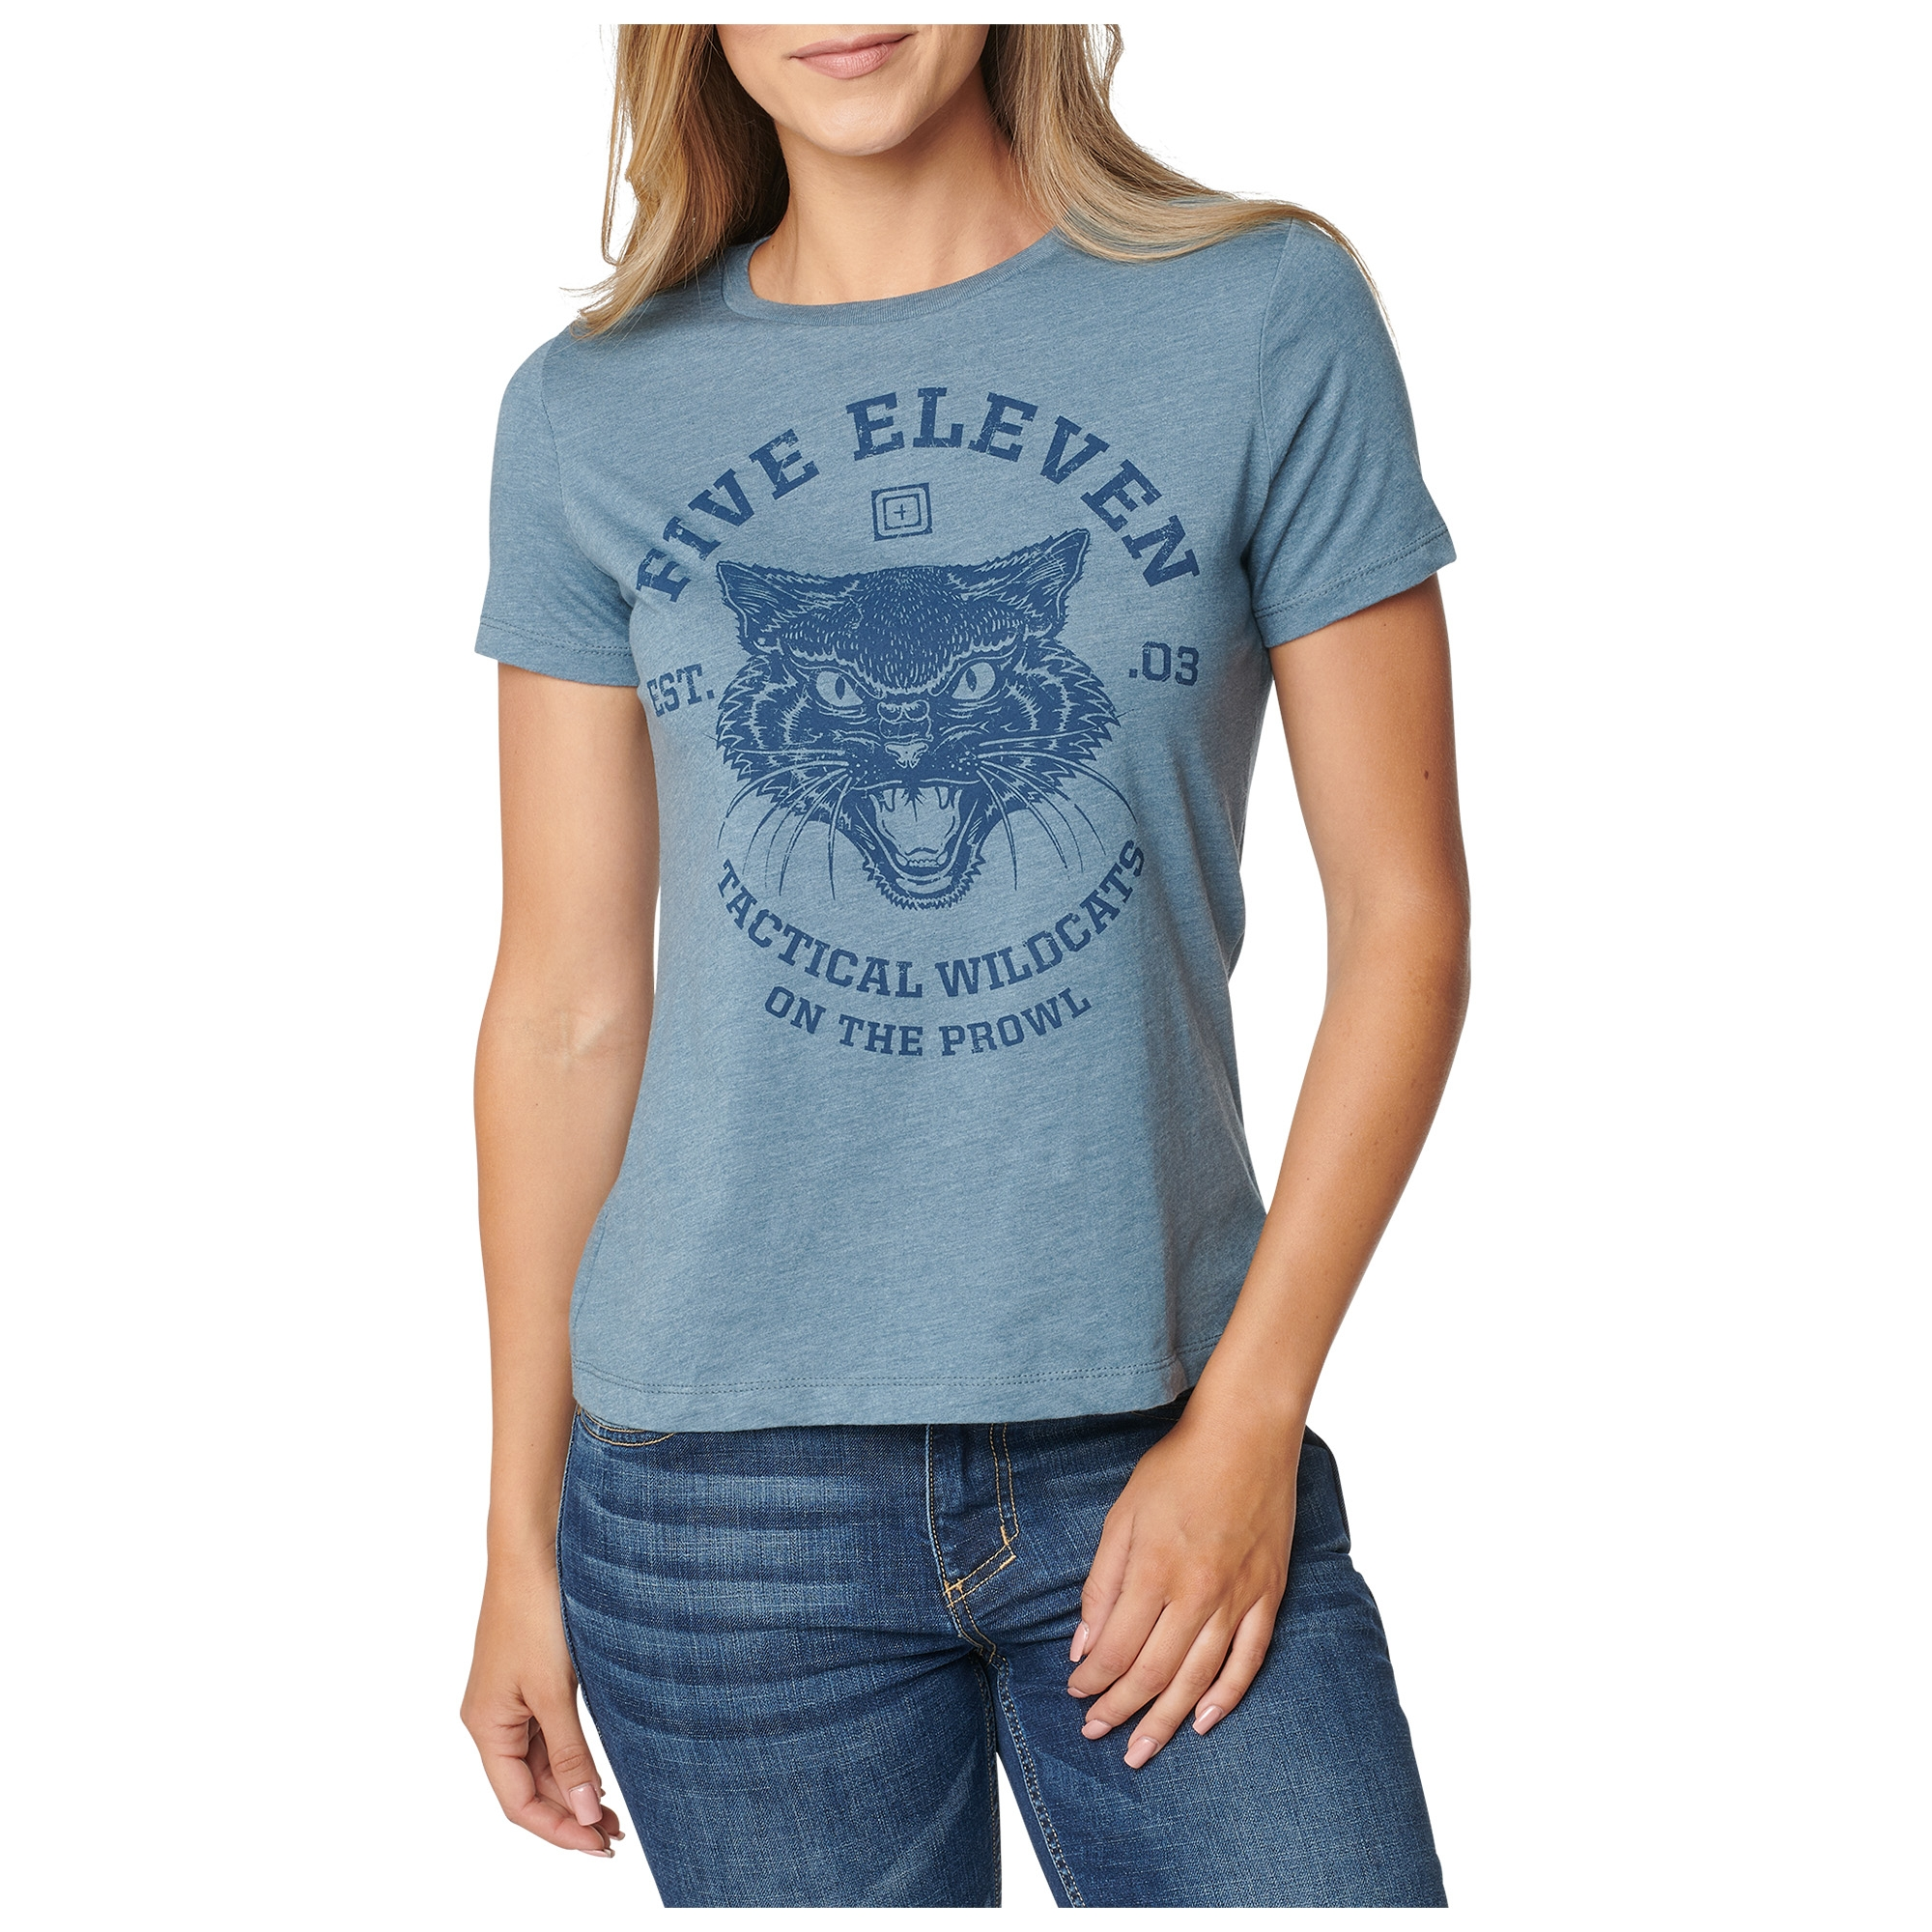 5.11 Tactical Women's Womens Wildcat Tee